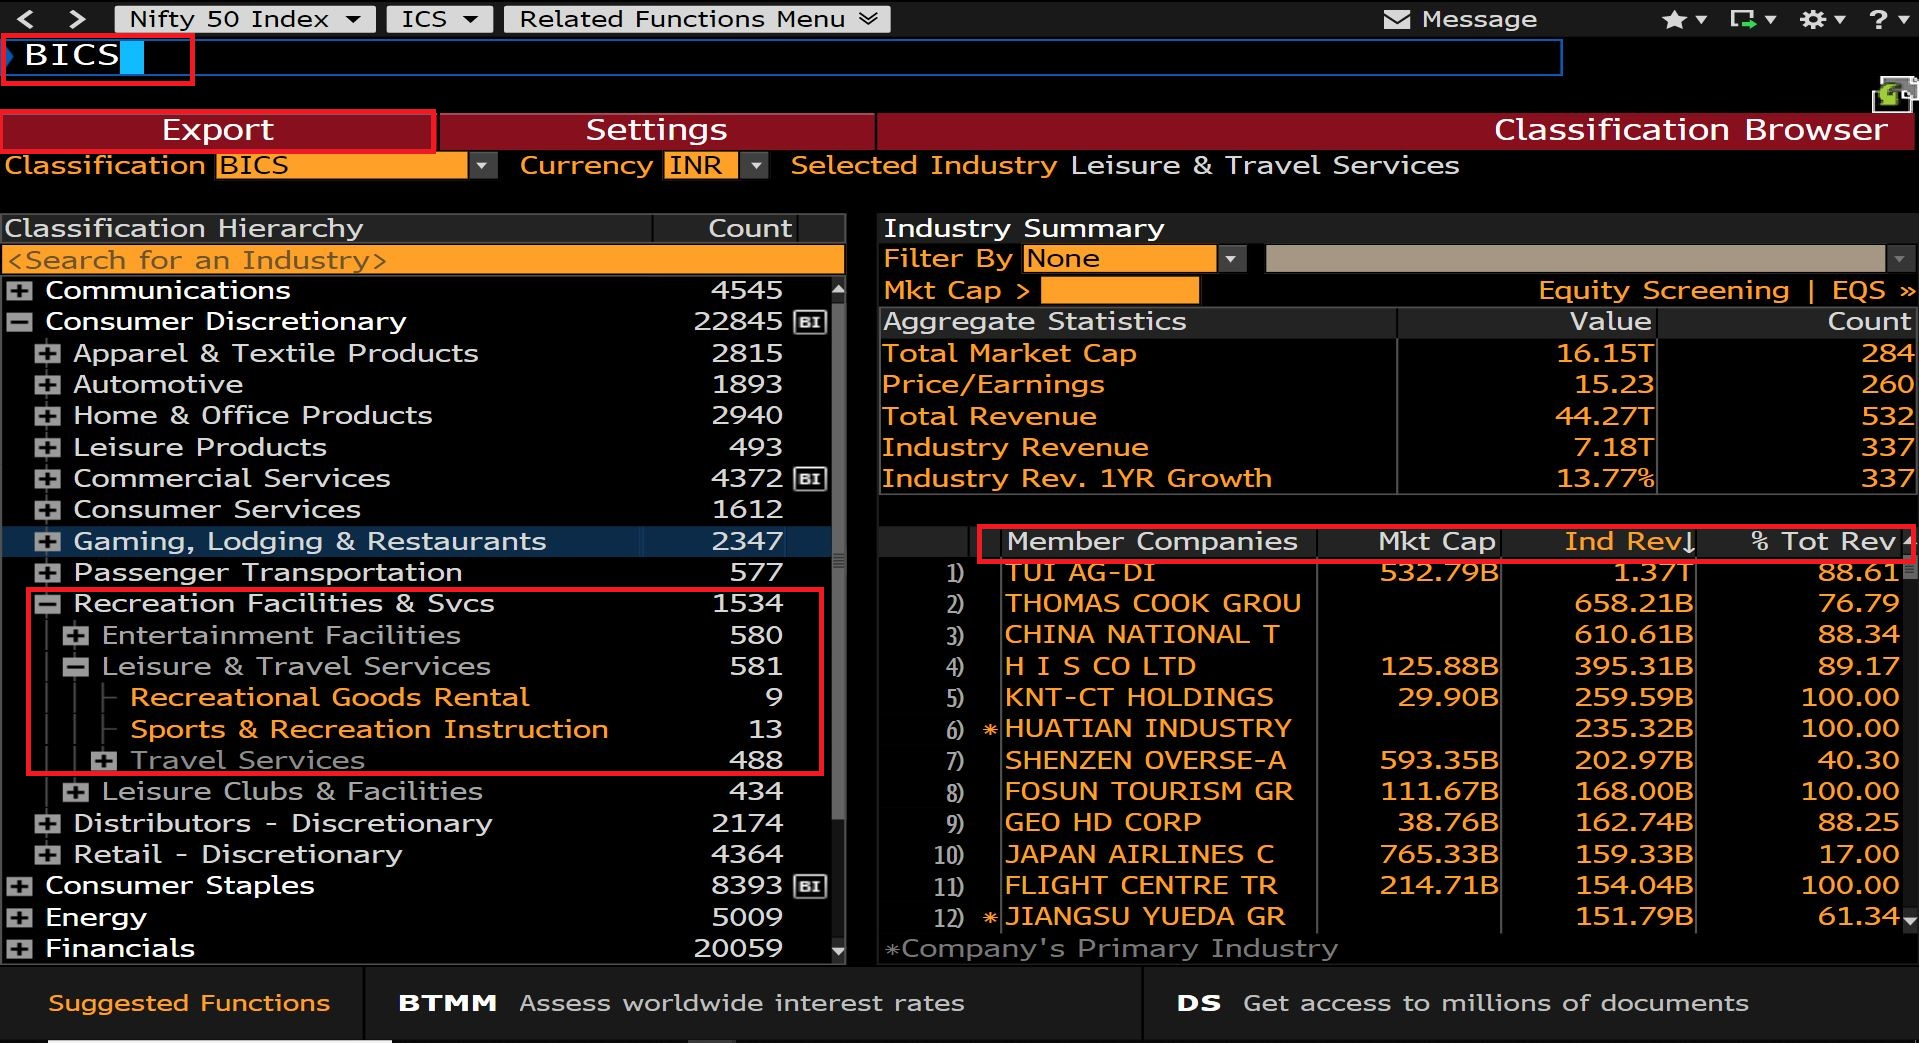 Login to Bloomberg (Available in Library) then Search for BICS and Select Consumer Discretionary and Click on Recreation Facilities & Svcs and Click on Leisure & Travel Services